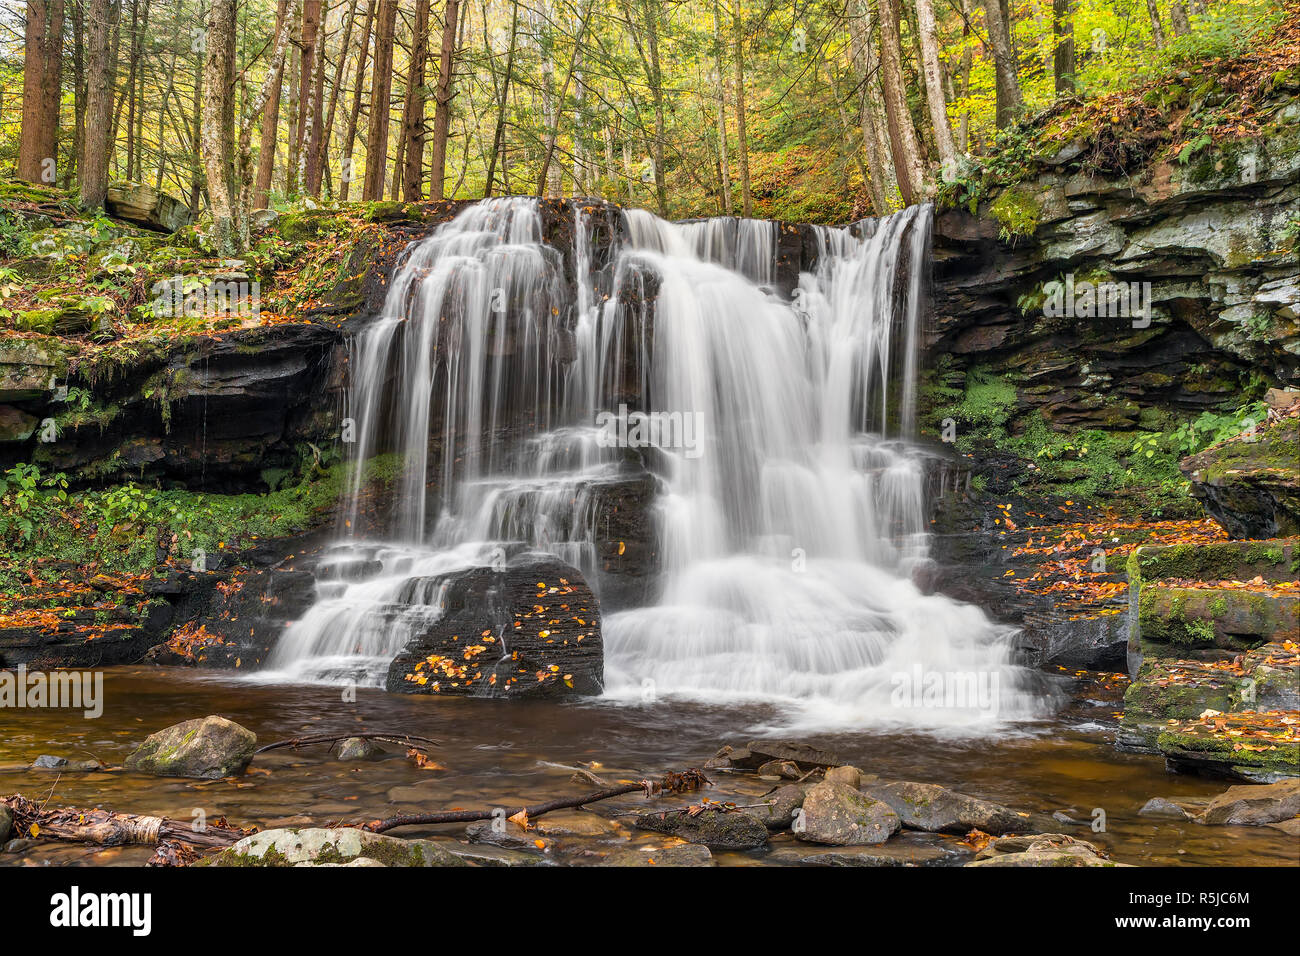 A beautiful cascading waterfall is surrounded by fall foliage on Dry Run in Pennsylvania's Loyalsock State Forest. Stock Photo